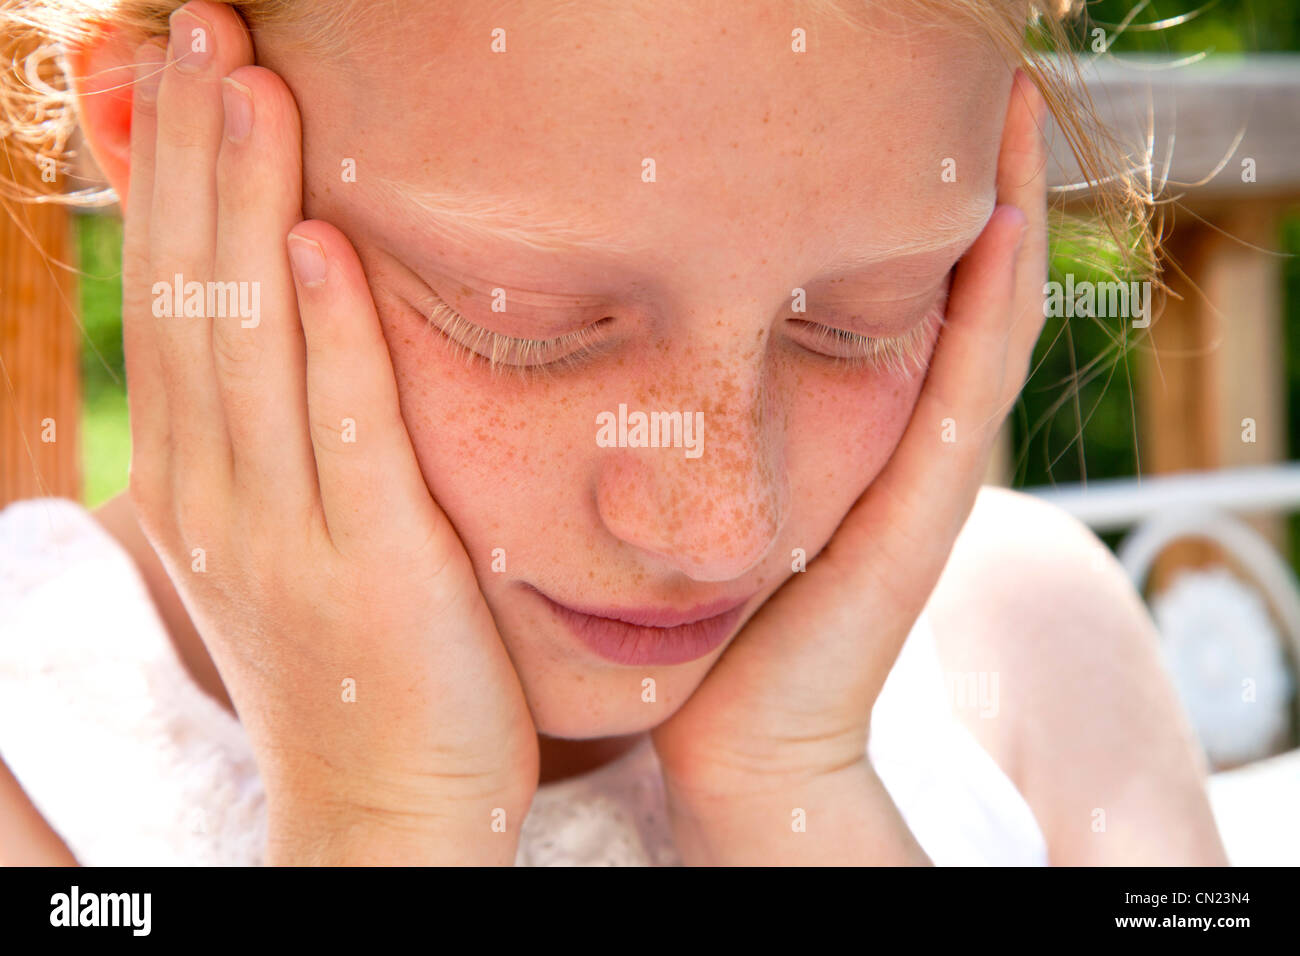 Young Freckled Girl With Hands on Face - Stock Image